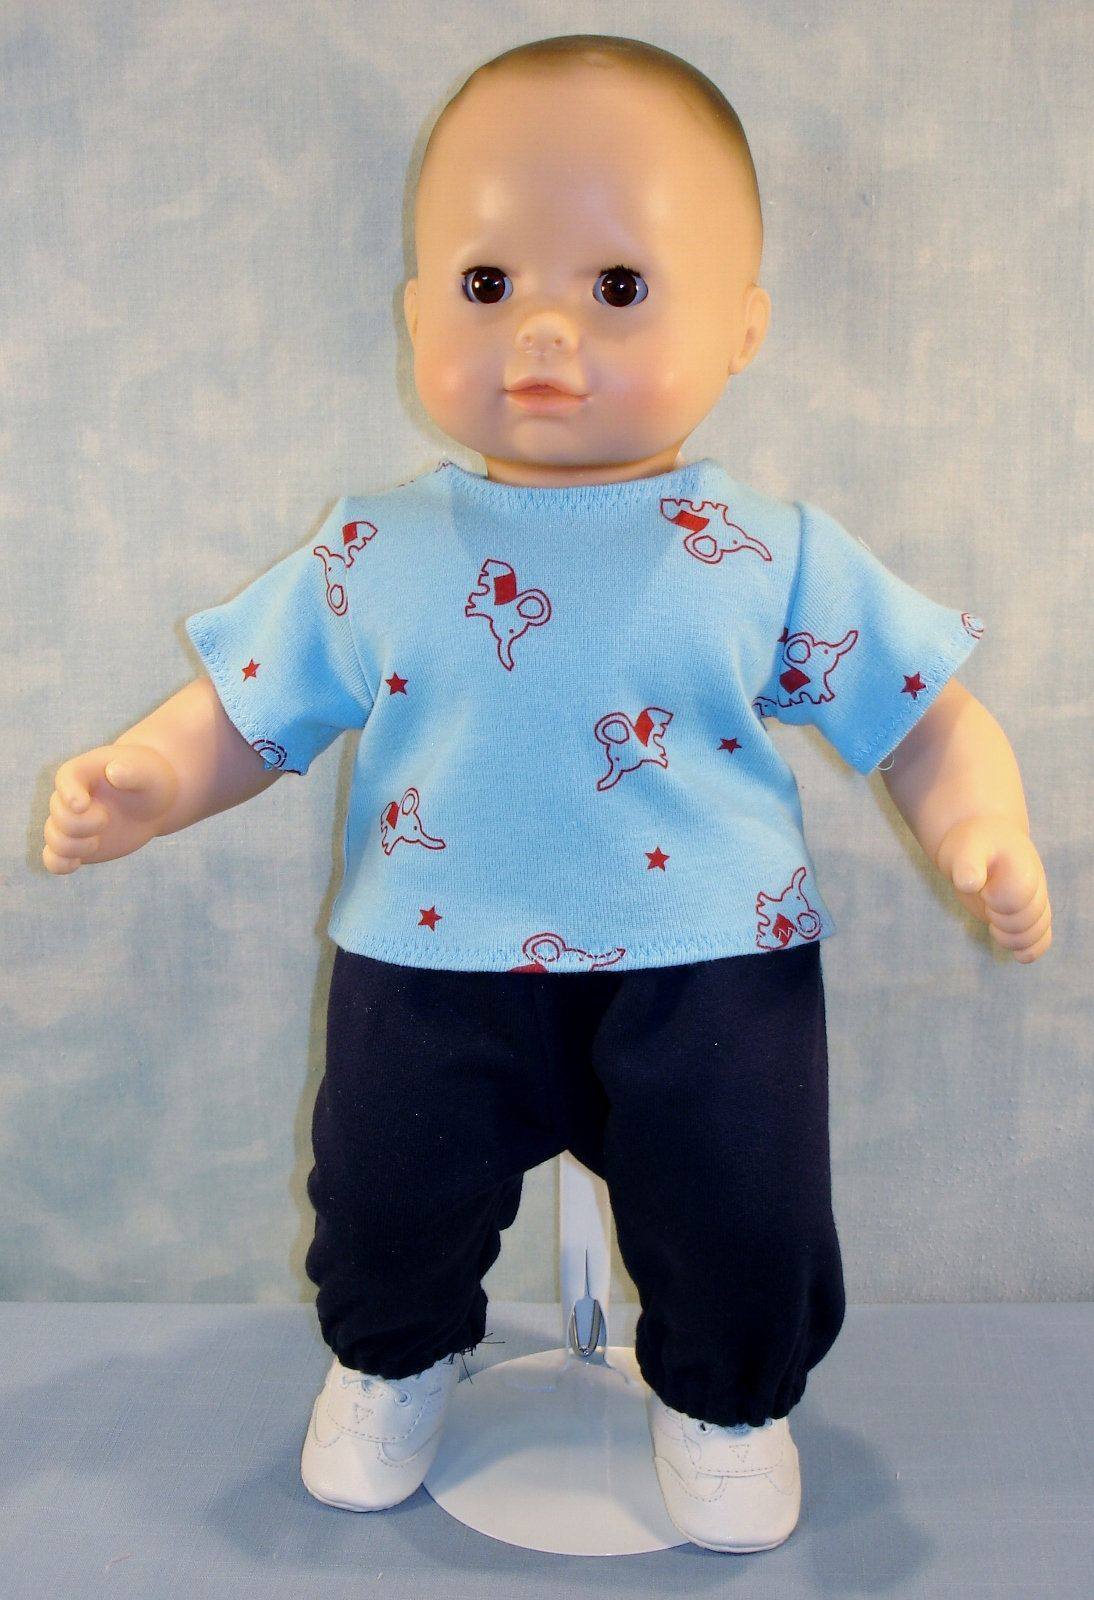 15 Inch Boy Doll Clothes Red Elephants On Blue T Shirt With Navy Sweatpants Handmade By Jane Ellen B Bitty Baby Clothes Boy Doll Clothes Kids Online Shopping